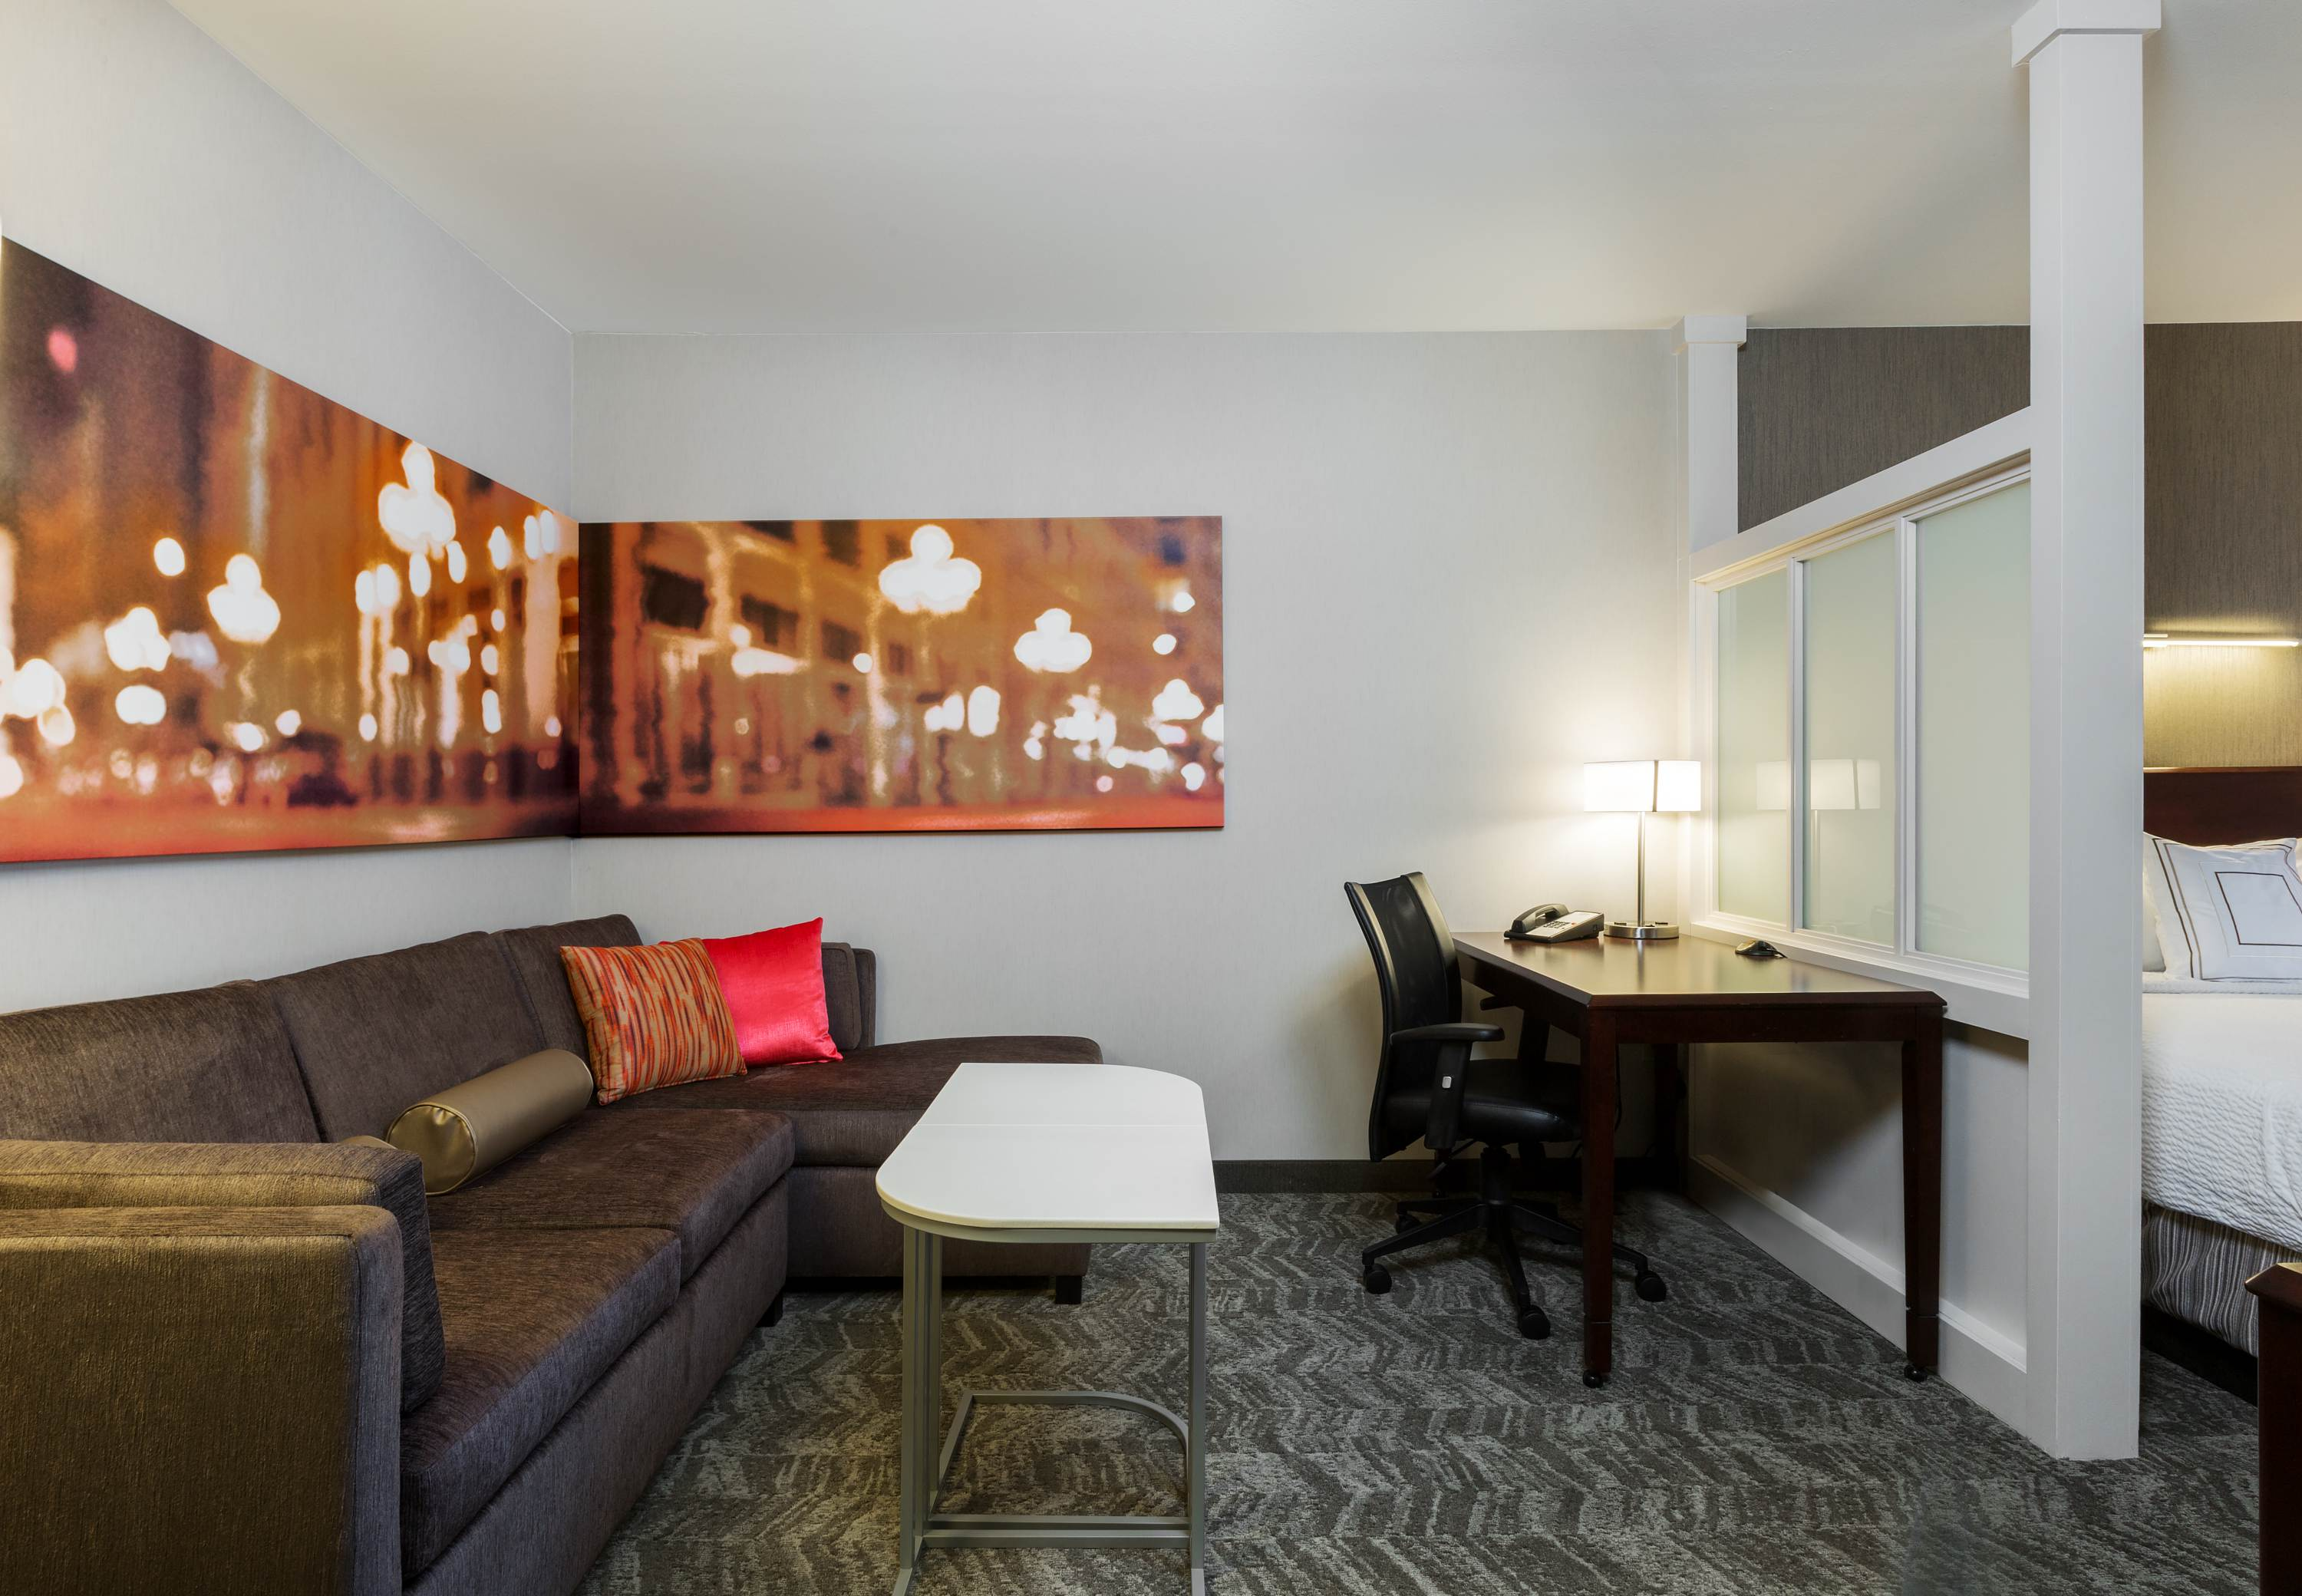 SpringHill Suites by Marriott Indianapolis Fishers image 31